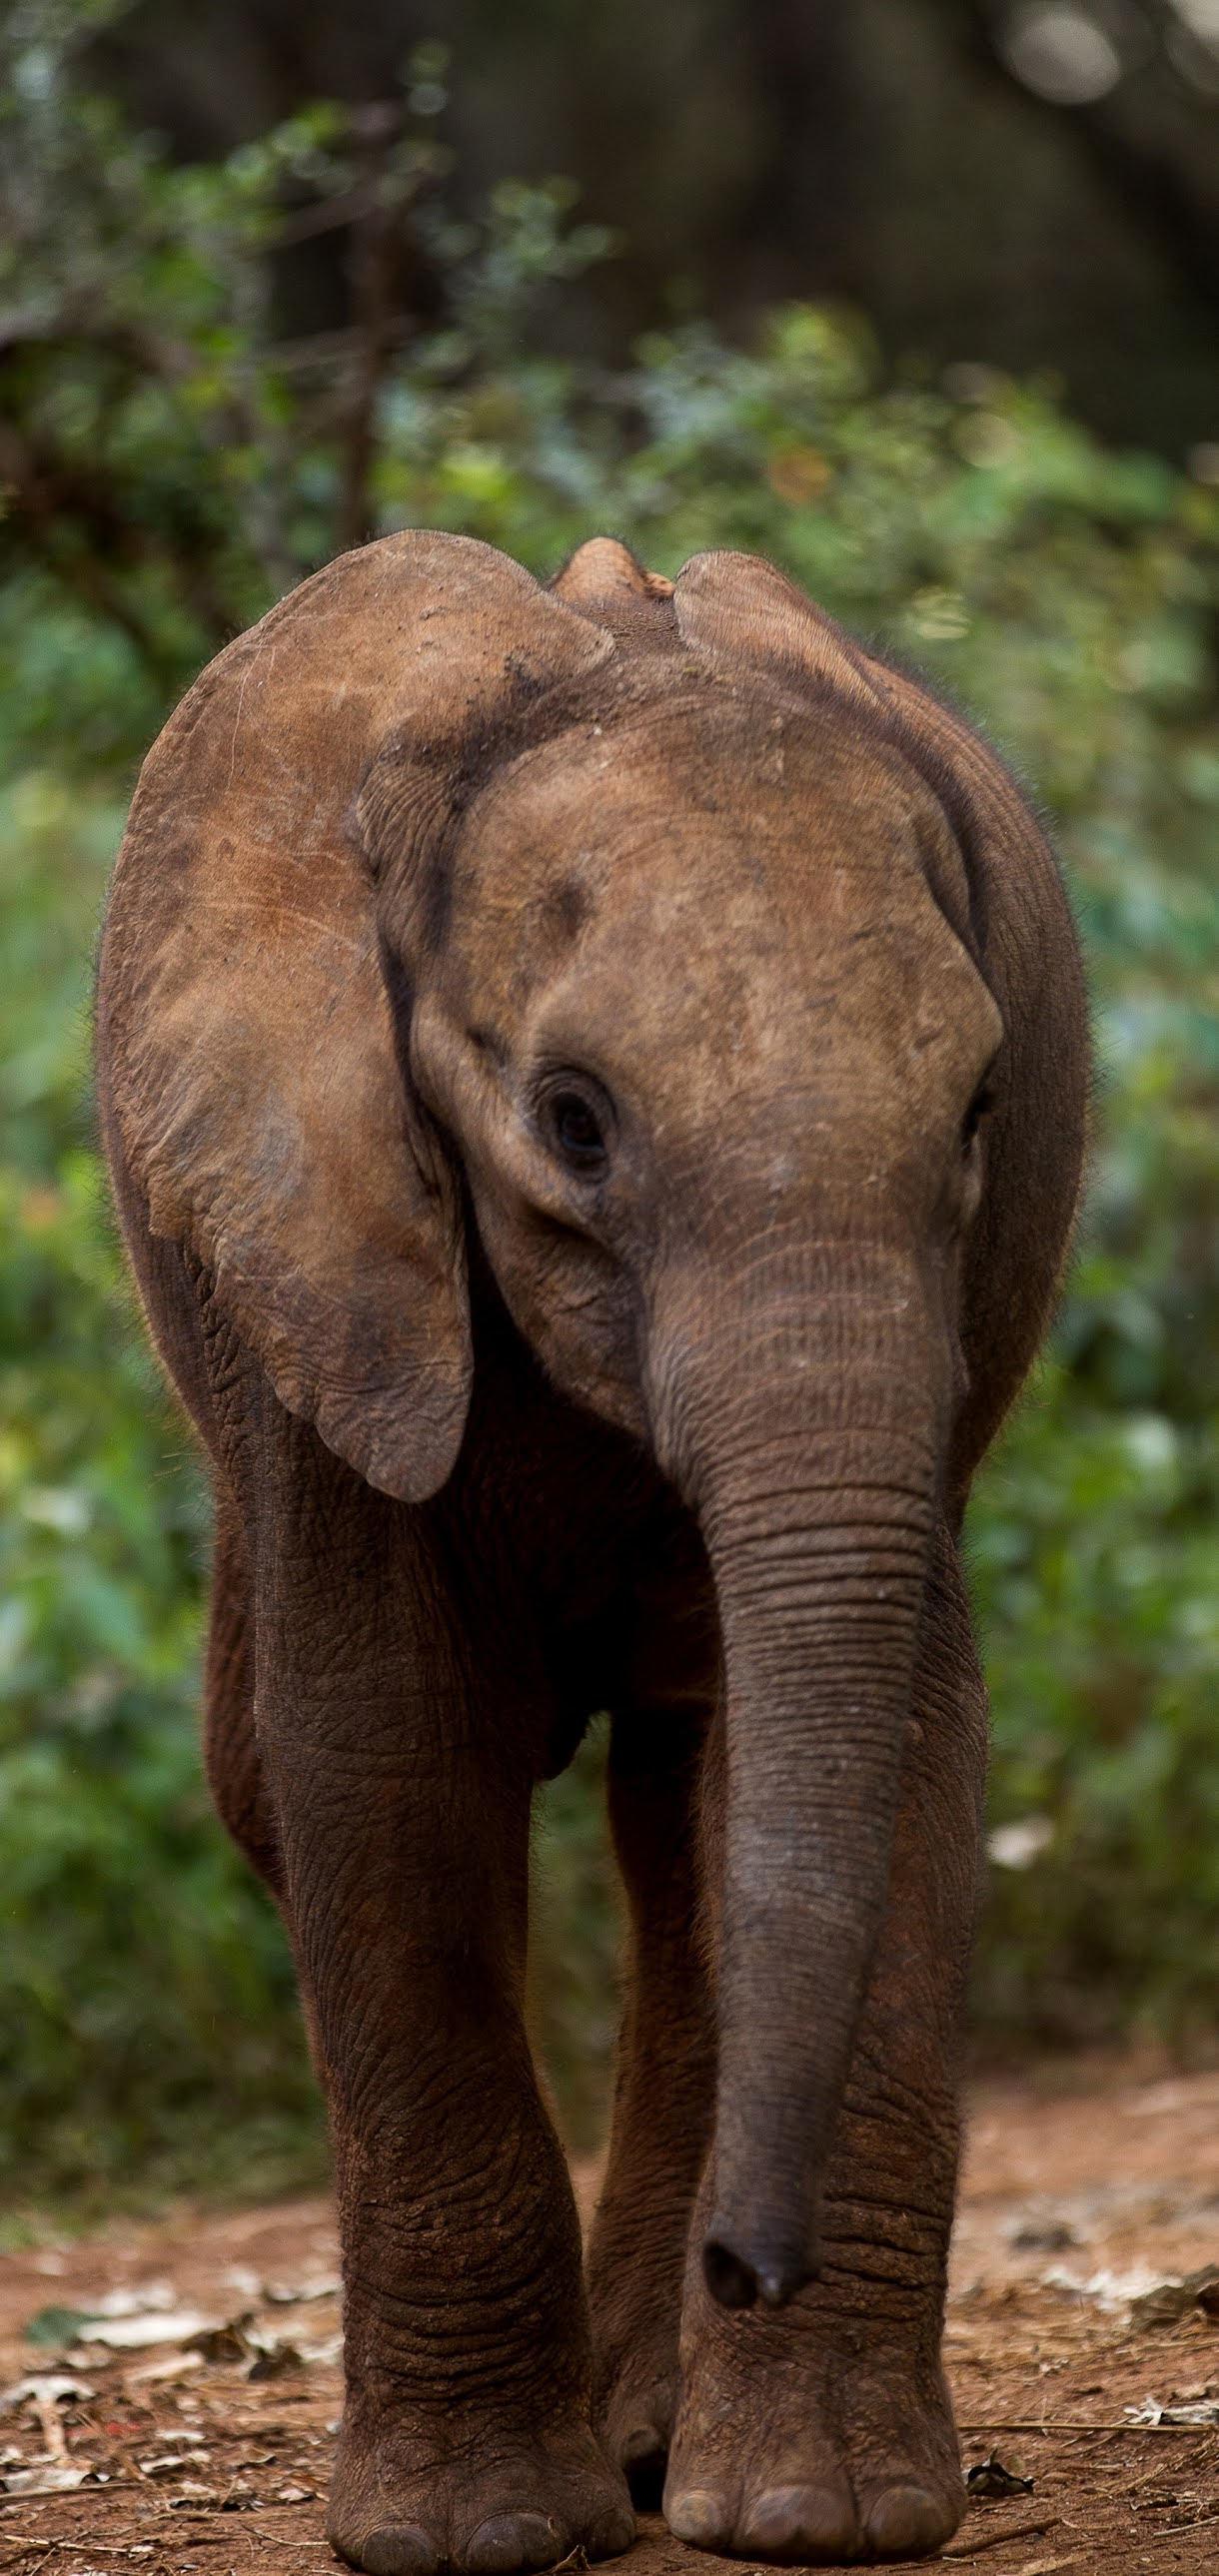 Picture of a baby elephant.